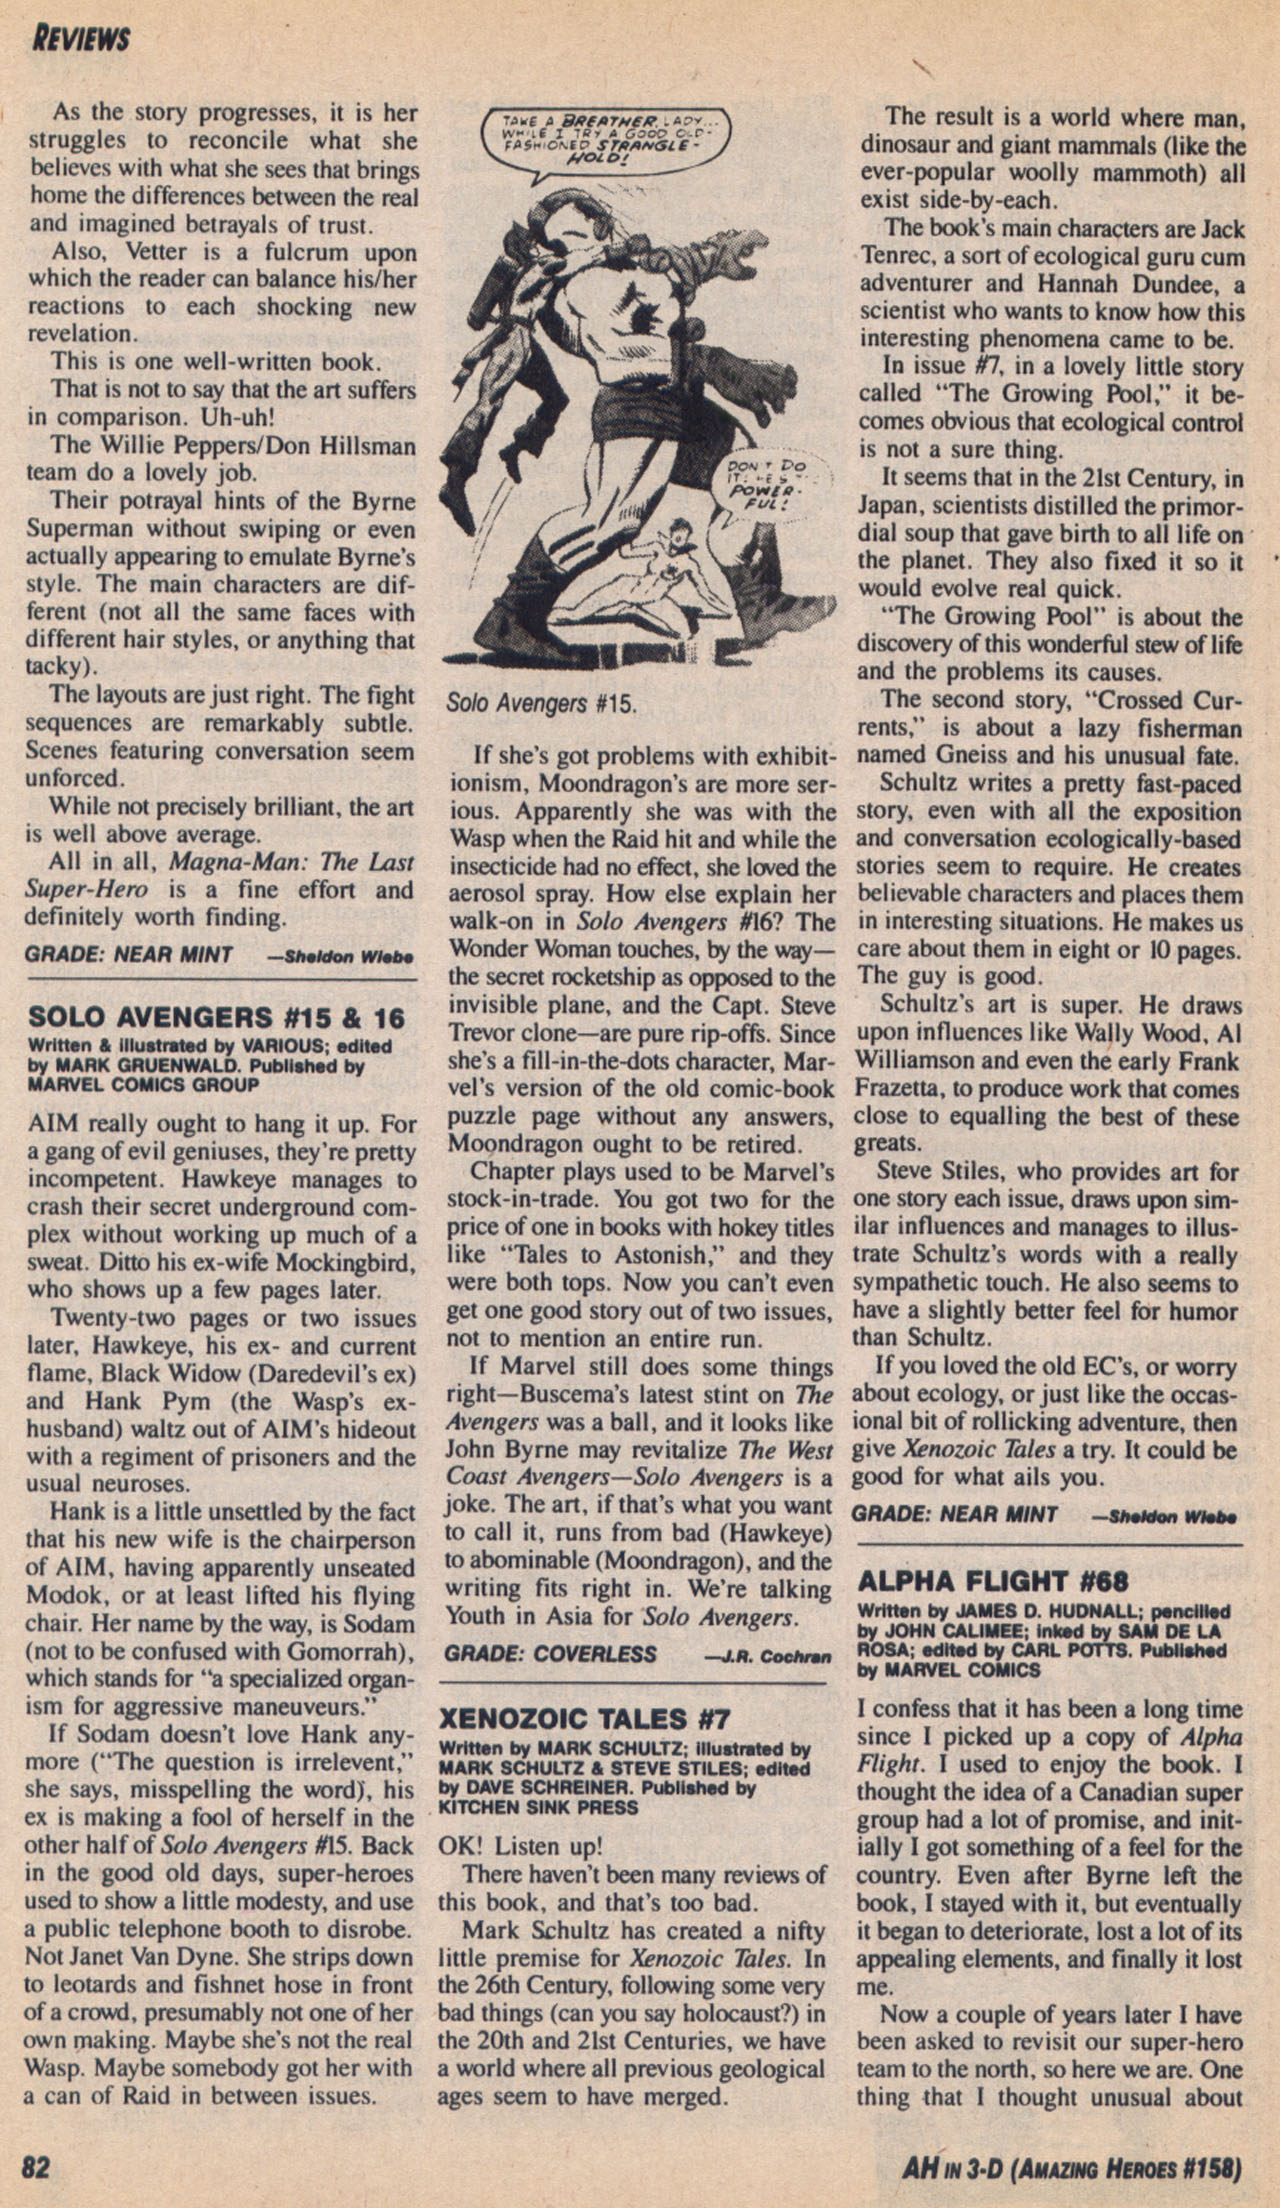 Read online Amazing Heroes comic -  Issue #158 - 83